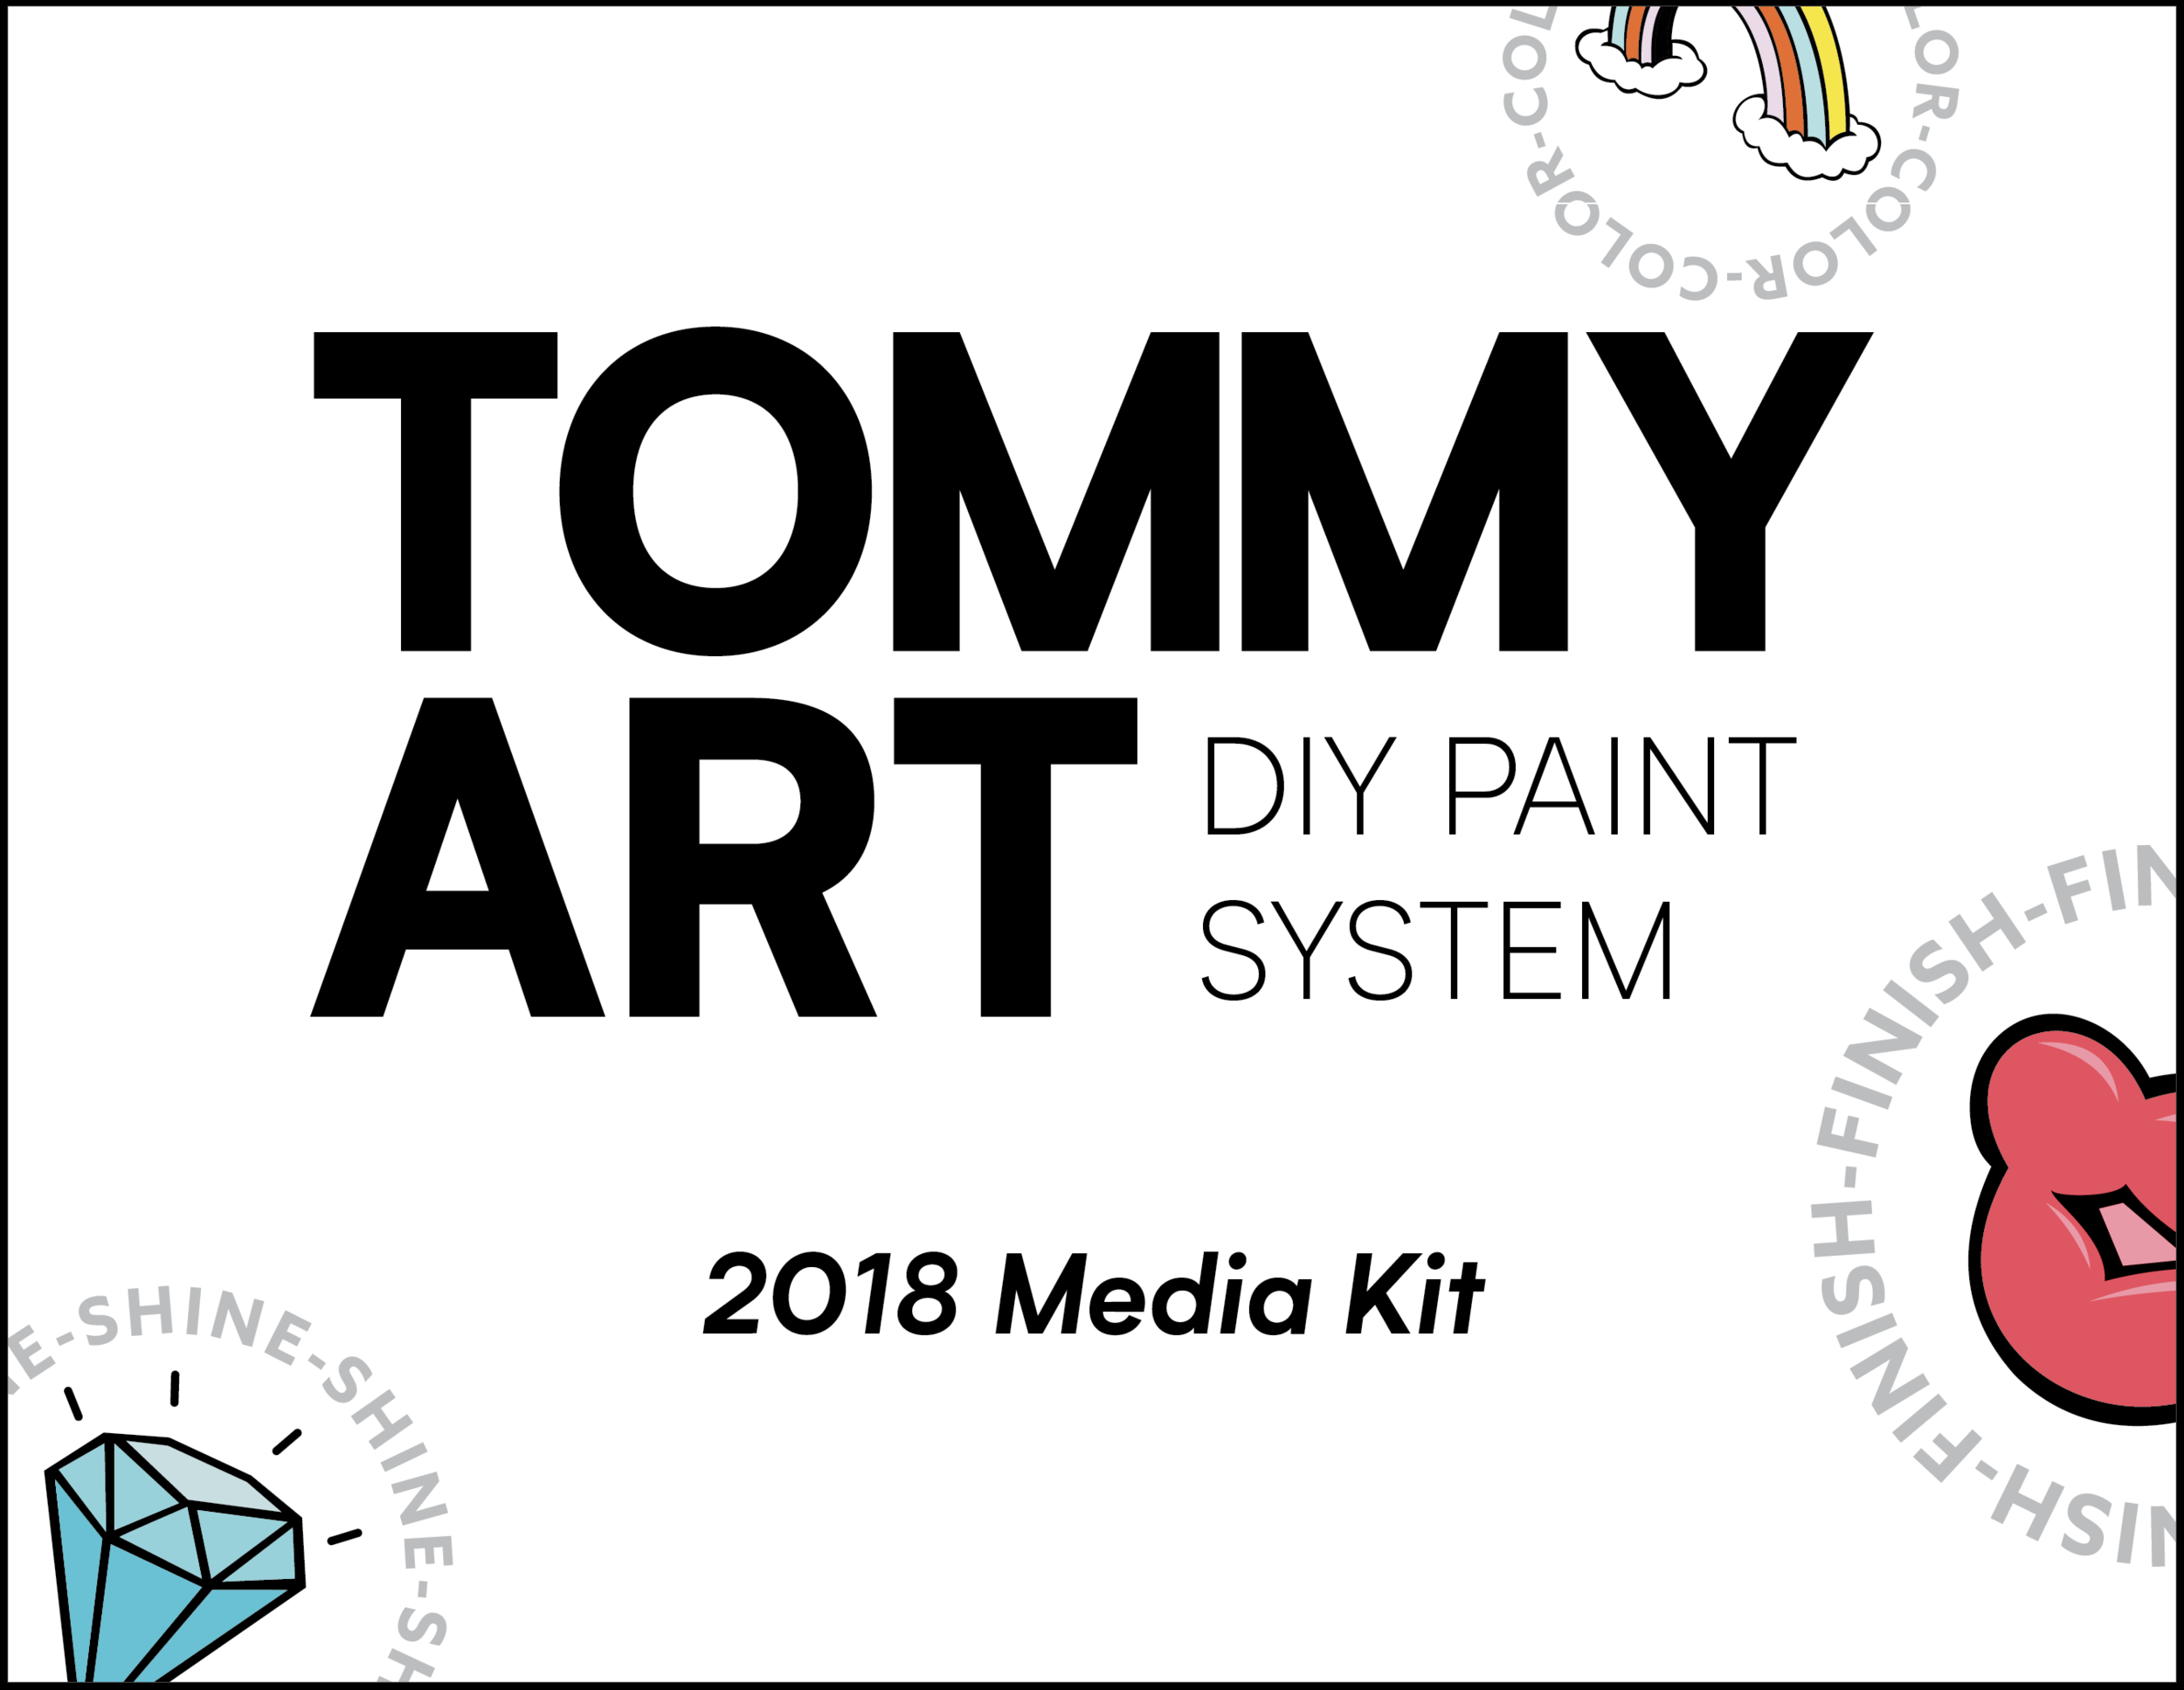 2018 Tommy Art Media Kit - Our 2018 media kit includes brand information, logos, graphics, press-approved photos, and paint line information.